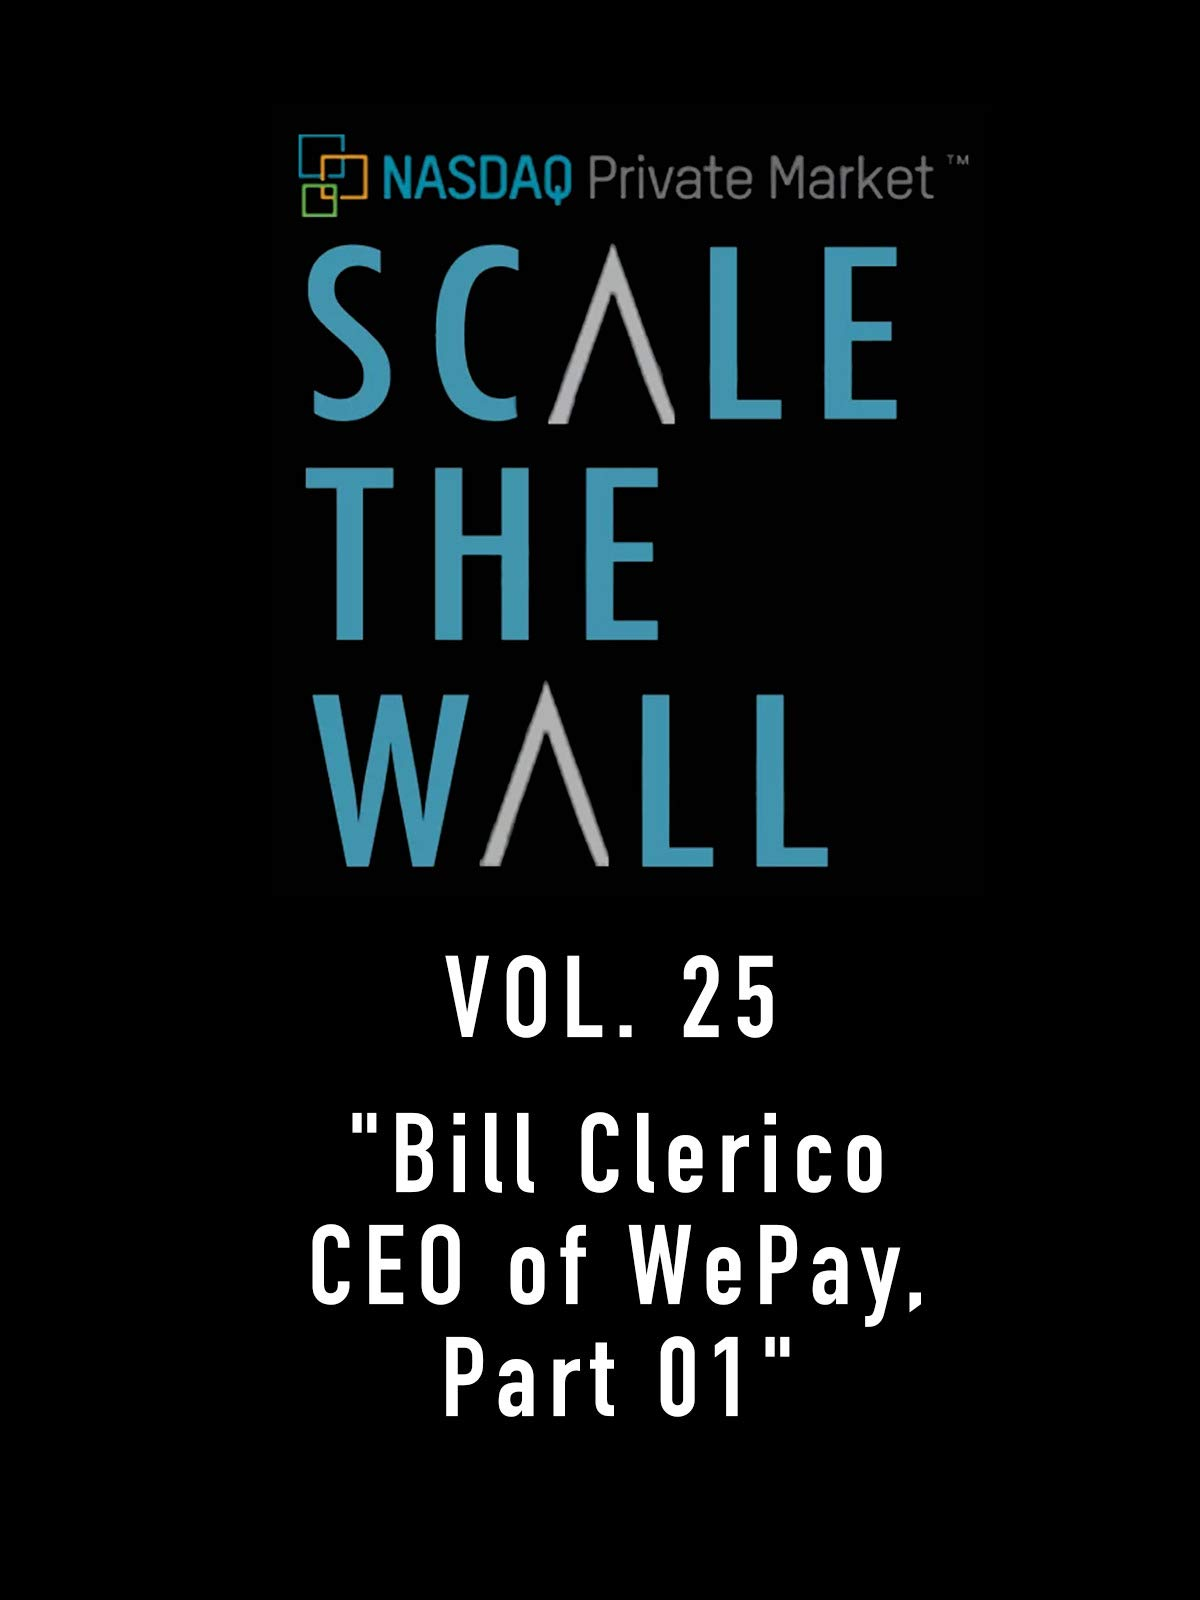 Scale the Wall Vol. 25